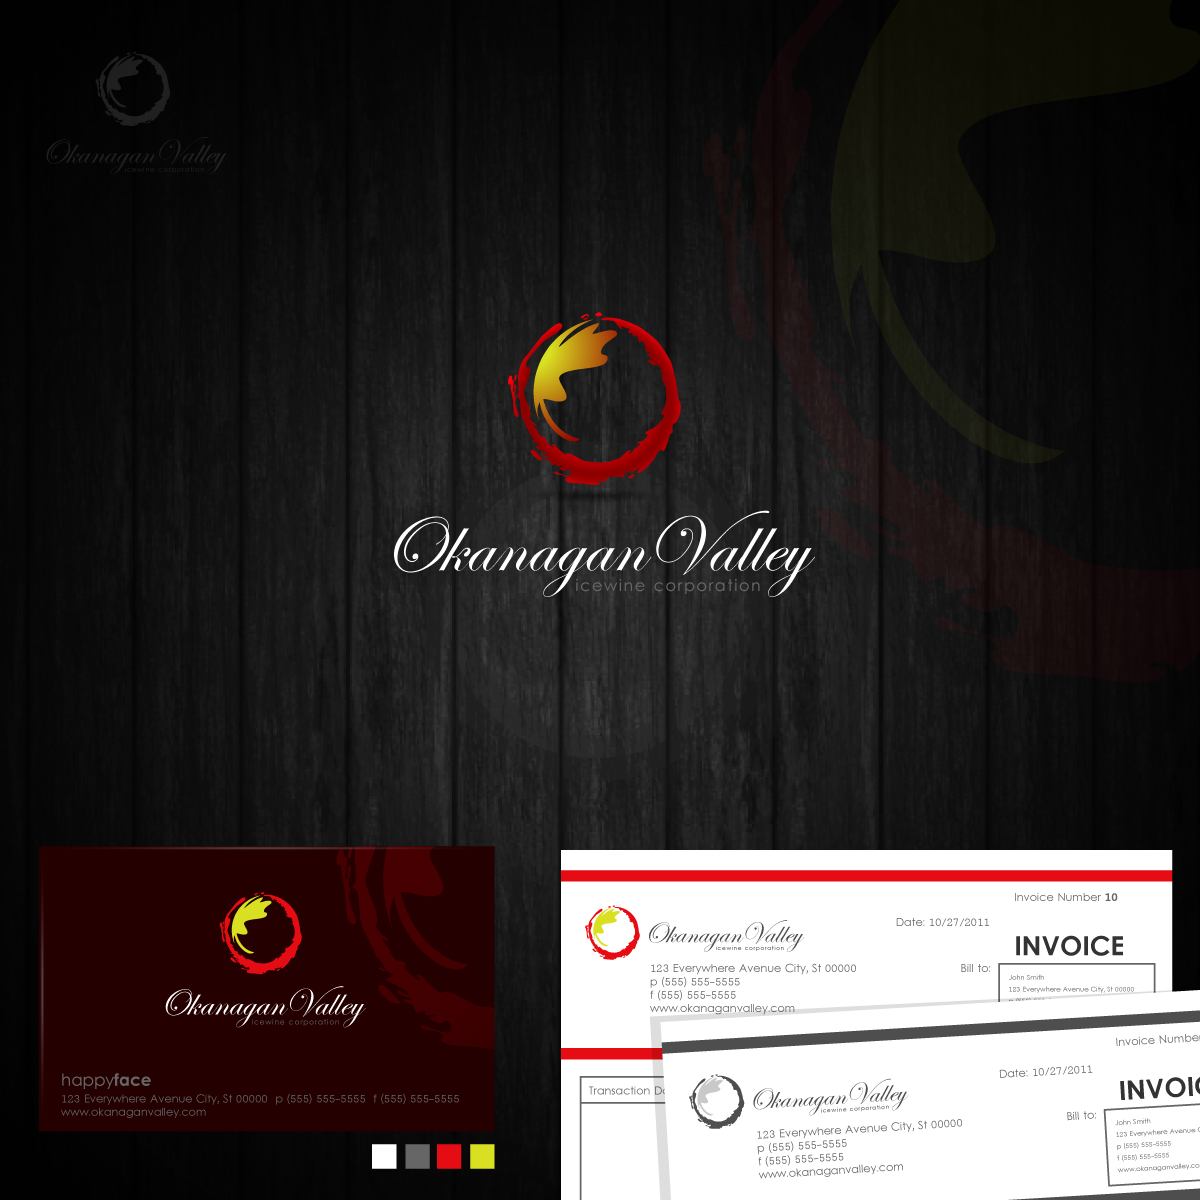 Logo Design by zesthar - Entry No. 227 in the Logo Design Contest Logo Design for wine export company.